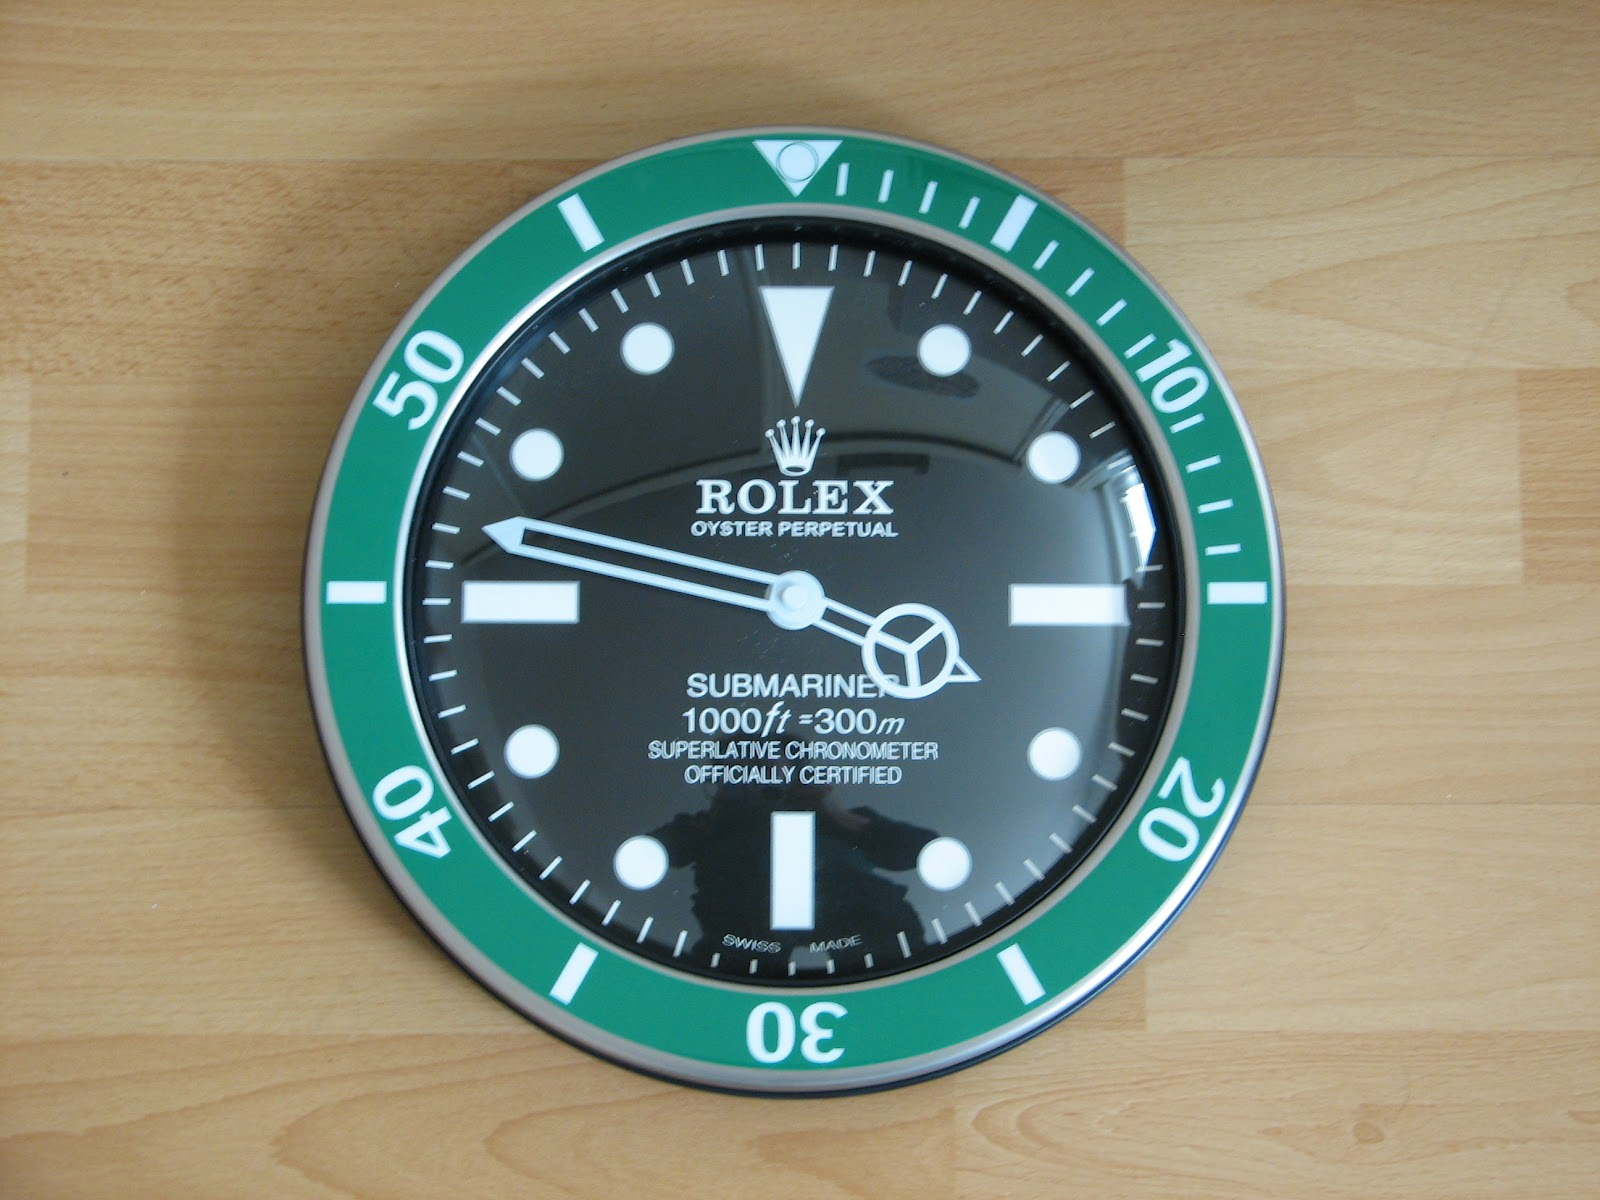 Fake rolex wallclocks and the authentic rolex wallclock watches and here you can take a look at a fake rolex wallclock amipublicfo Gallery